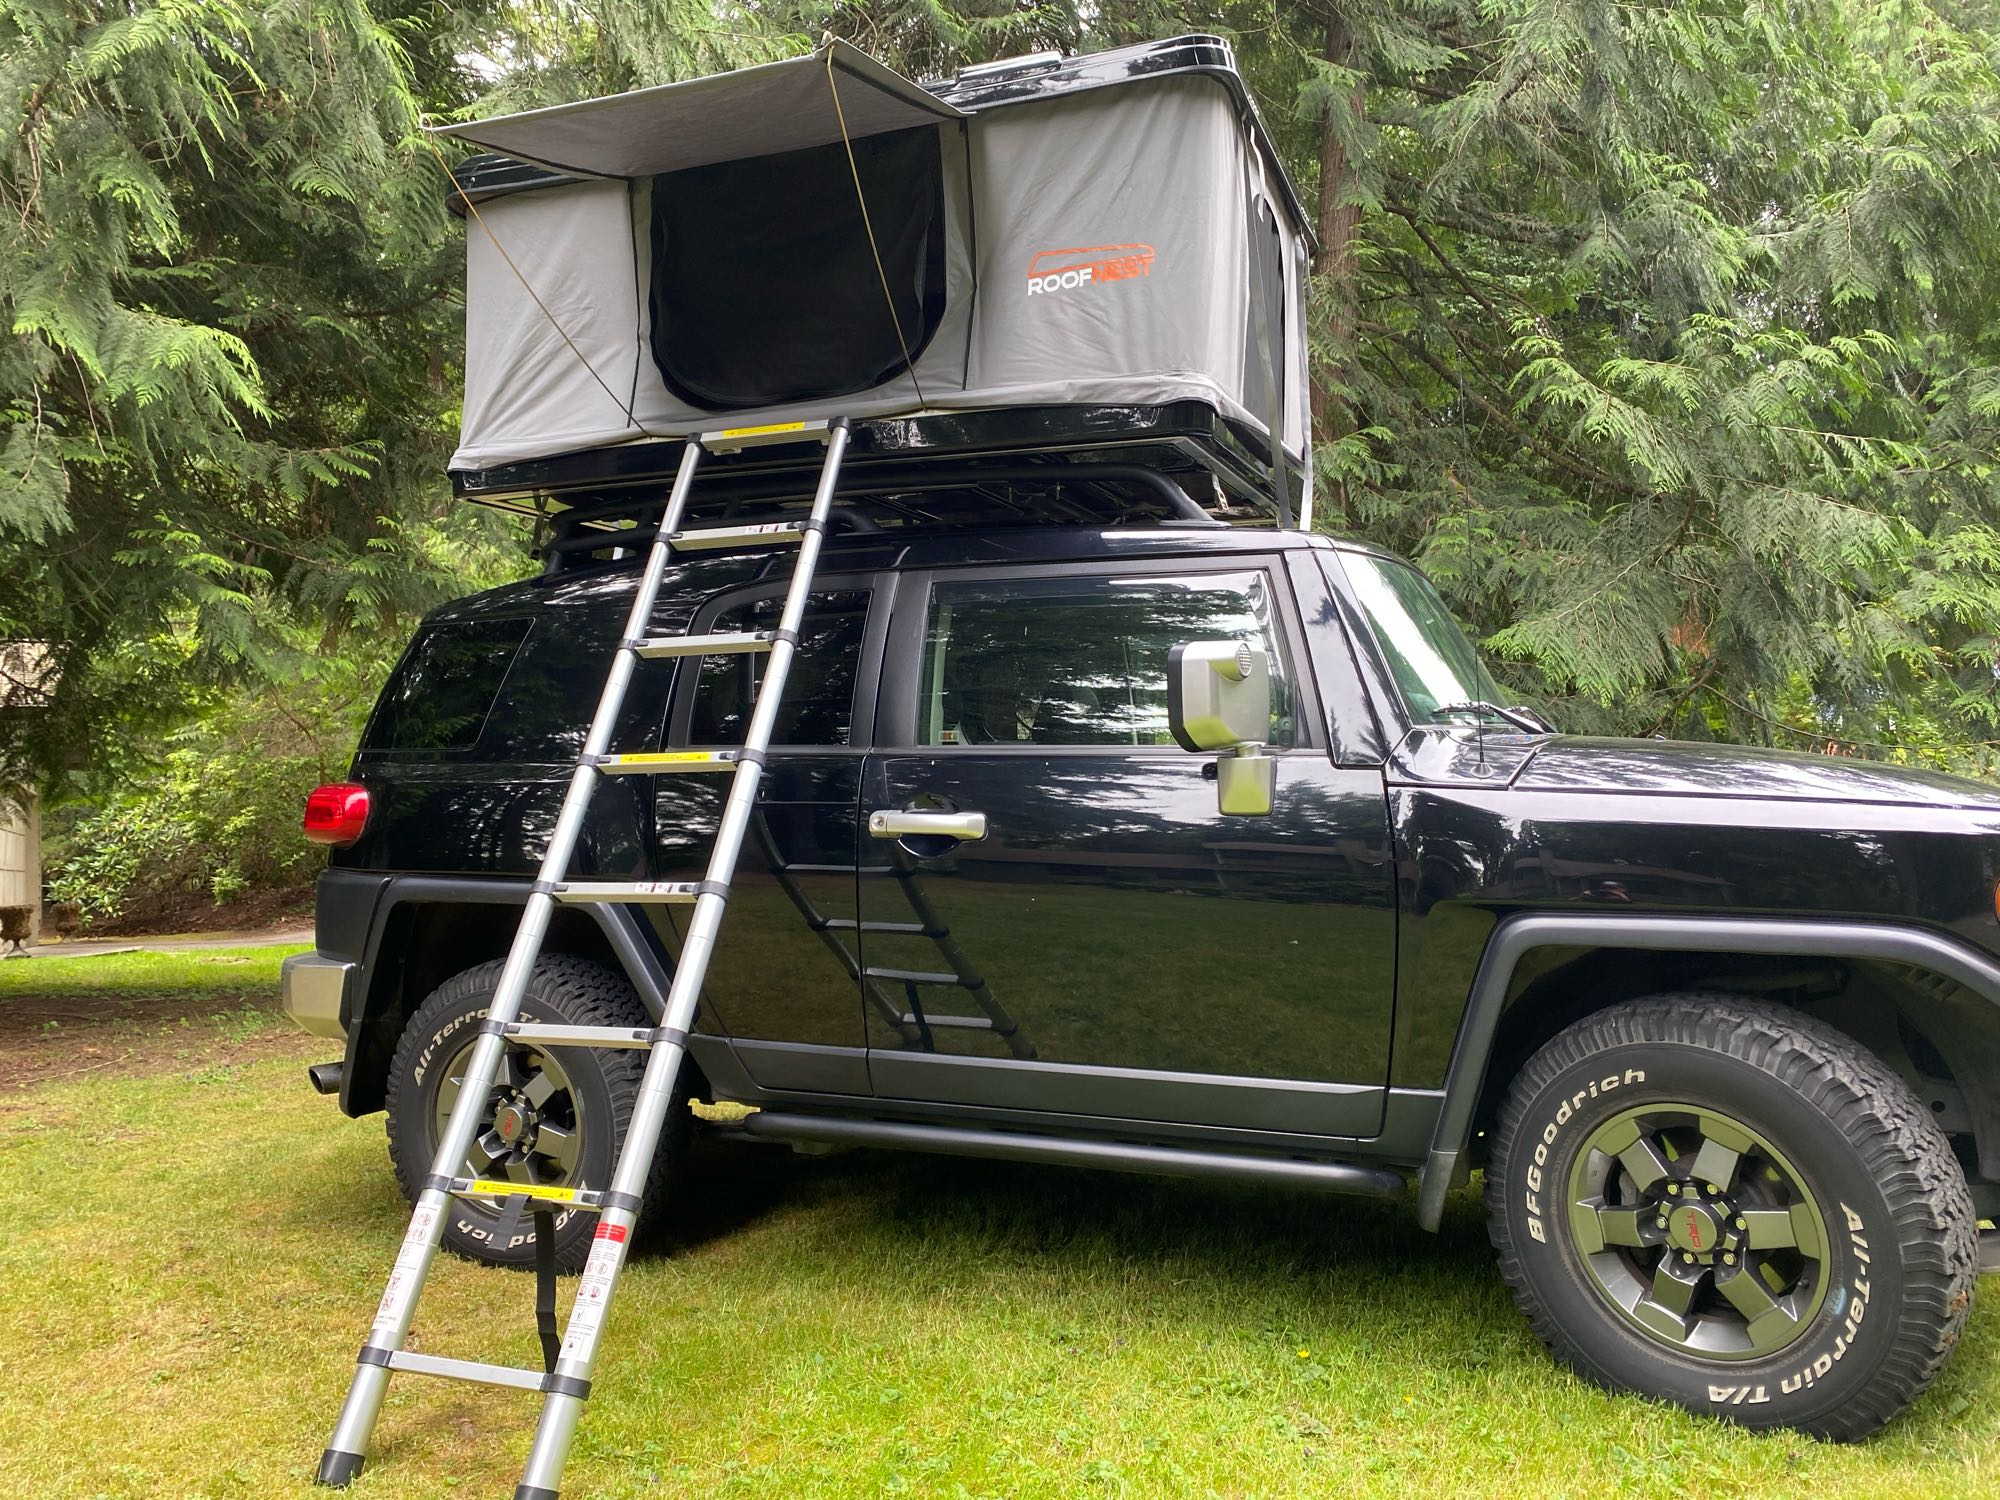 Roof Nest Eagle Tent. Toyota Landcruiser 2007